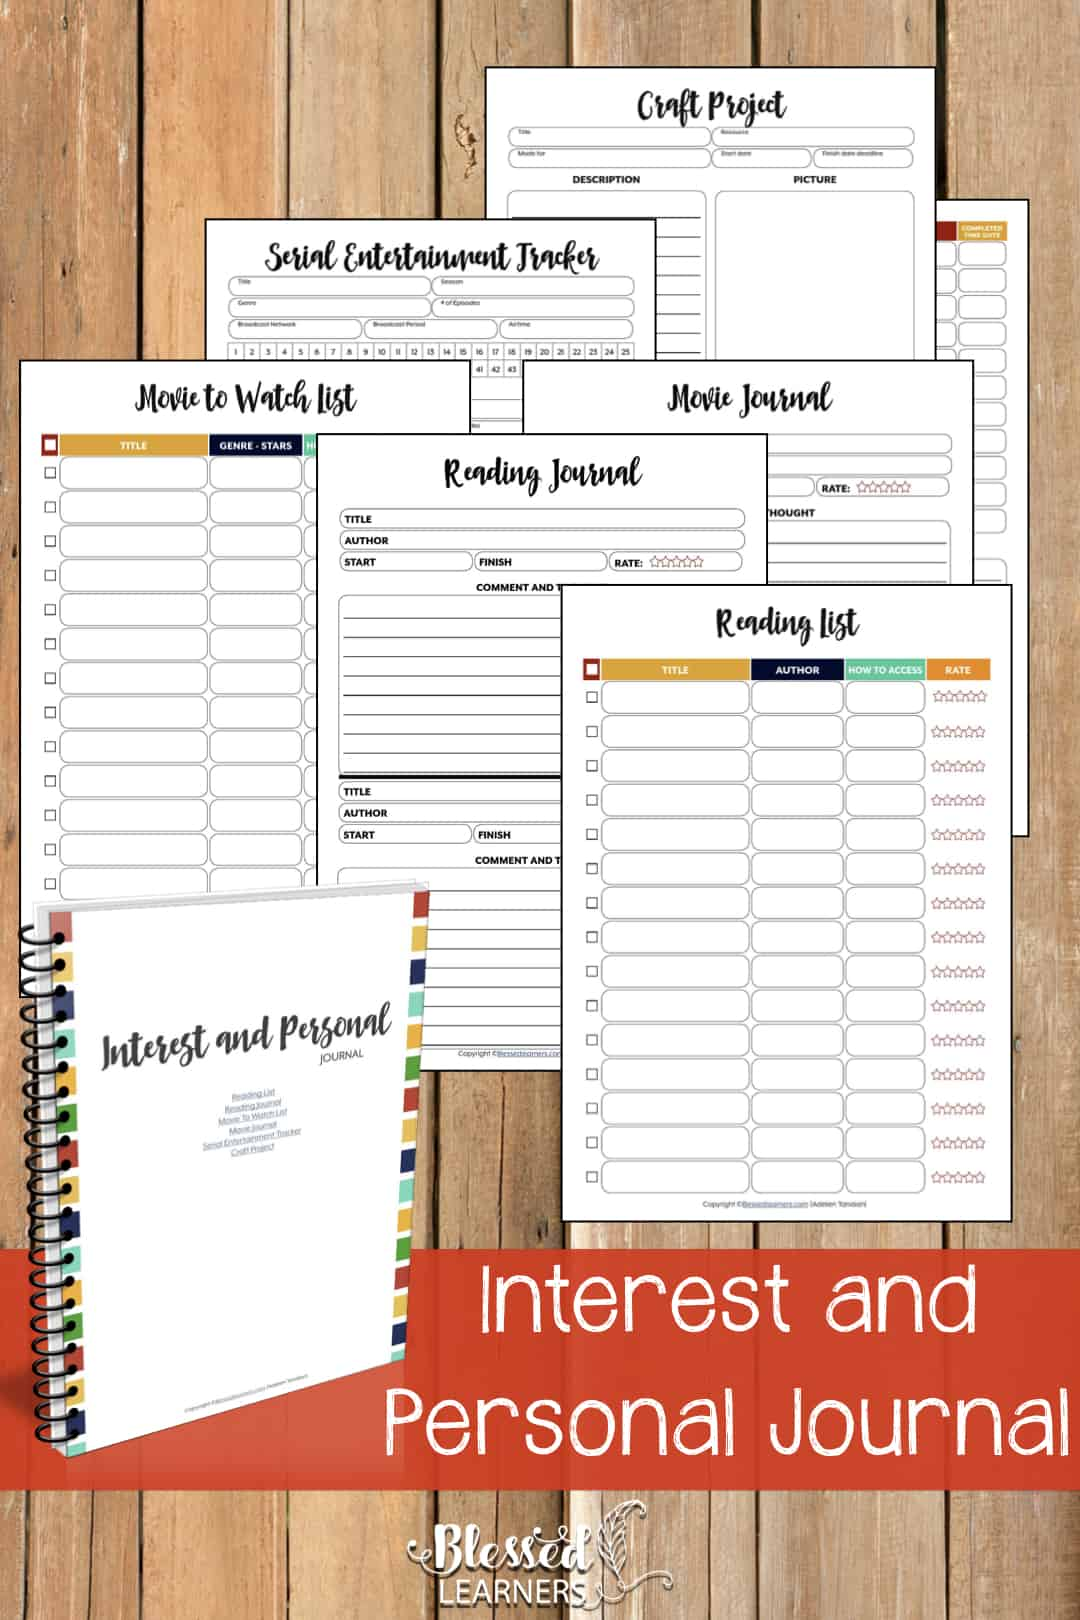 The Ultimate Life Planner Organizer for Moms is the perfect solution to getting most aspects of your home-and-work life well organized. A total of 230+ printable pages you can customize to use are included in the digital file. | Interest and Personal Journal | #Planner #Printable #TimeManagement #Organizer